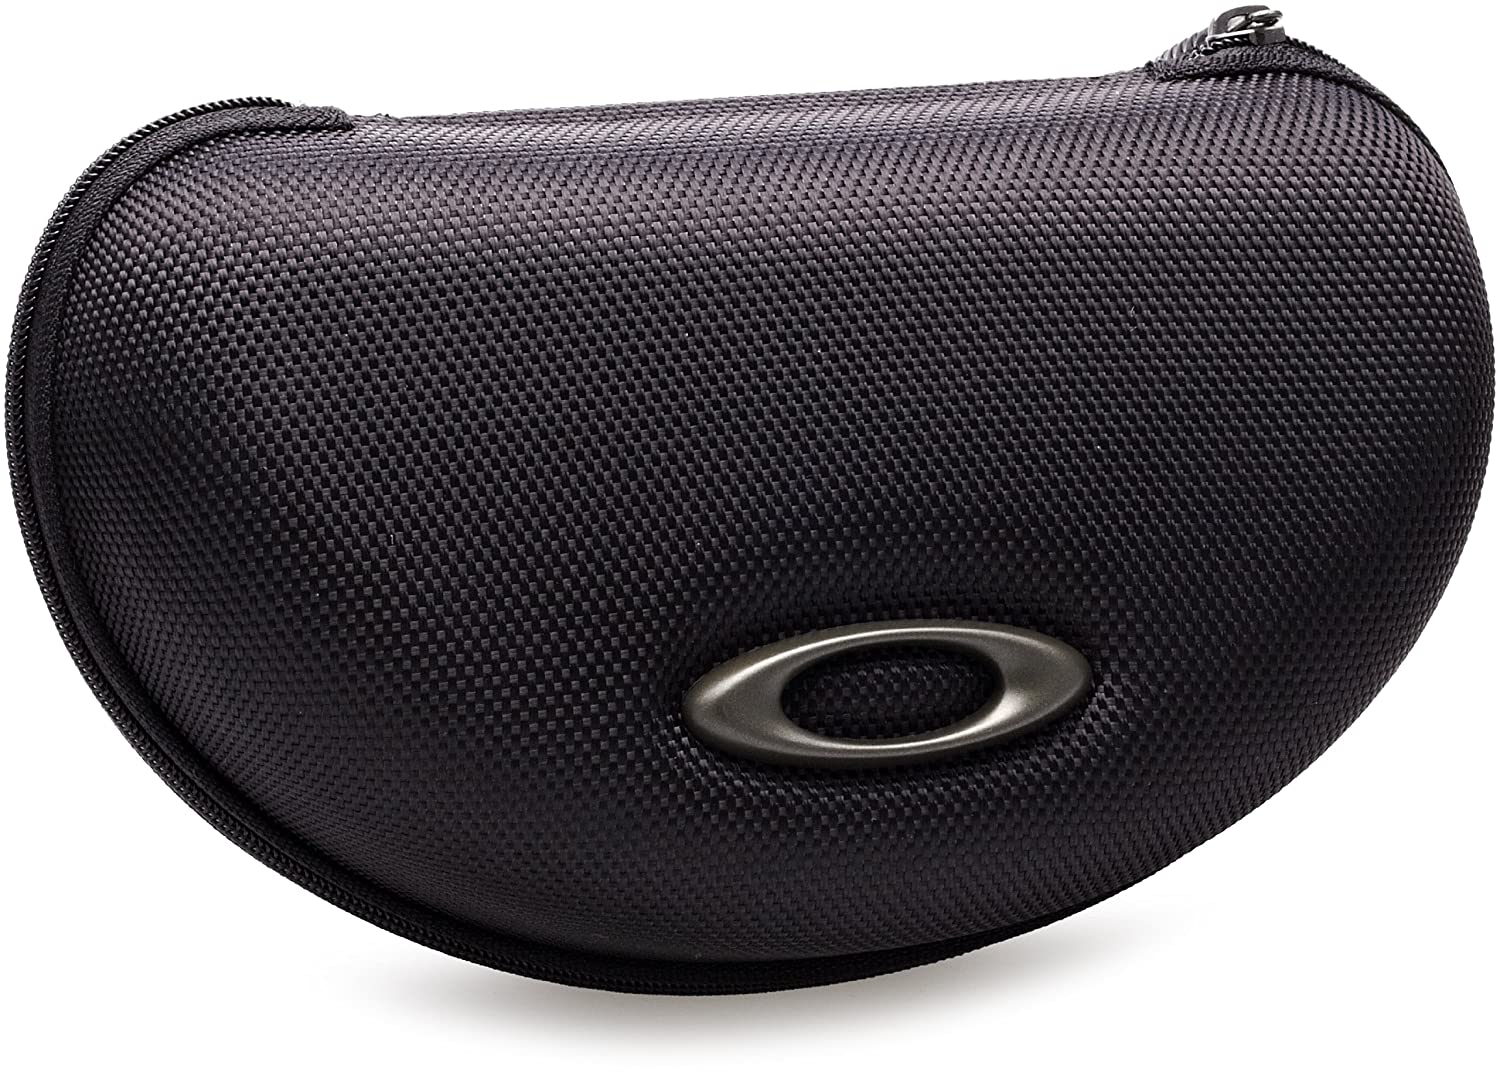 Oakley Glasses Cases